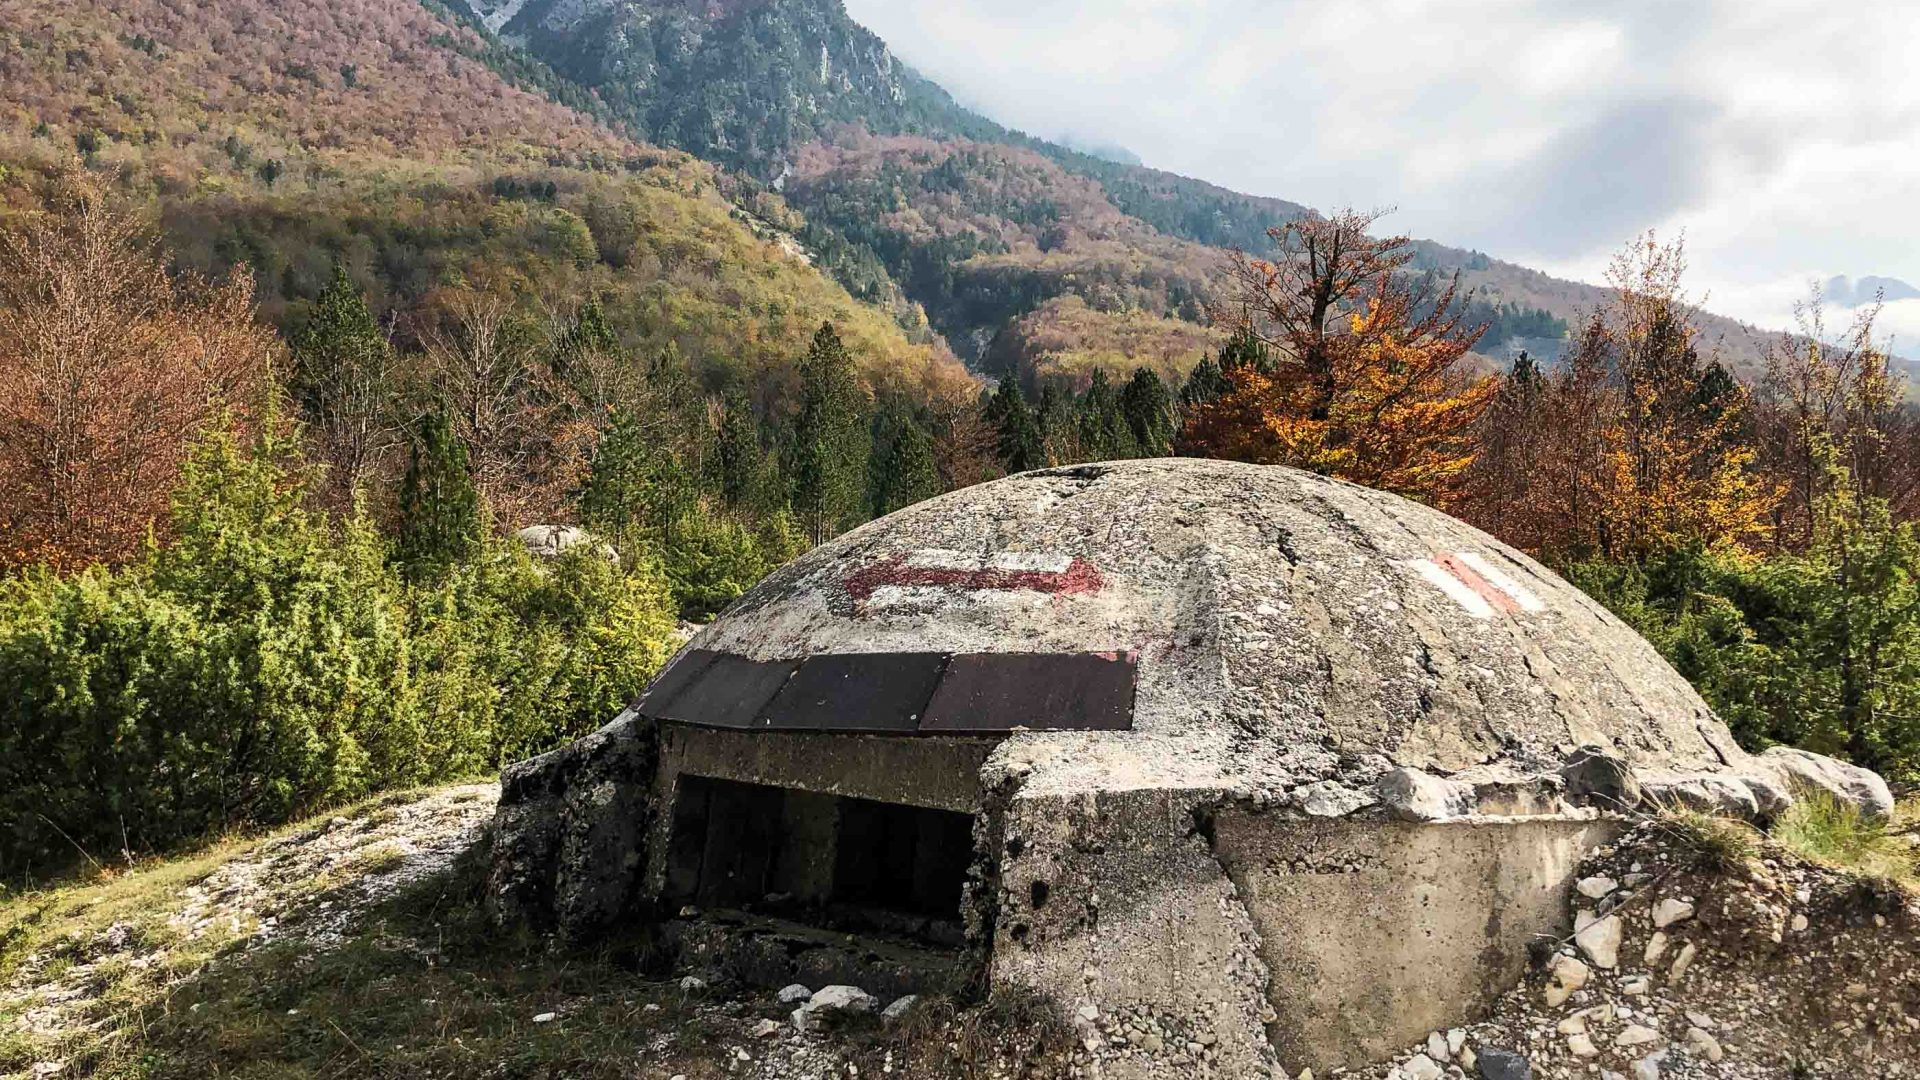 A bunker in Albania marks what used to be a militarized border with Montenegro.